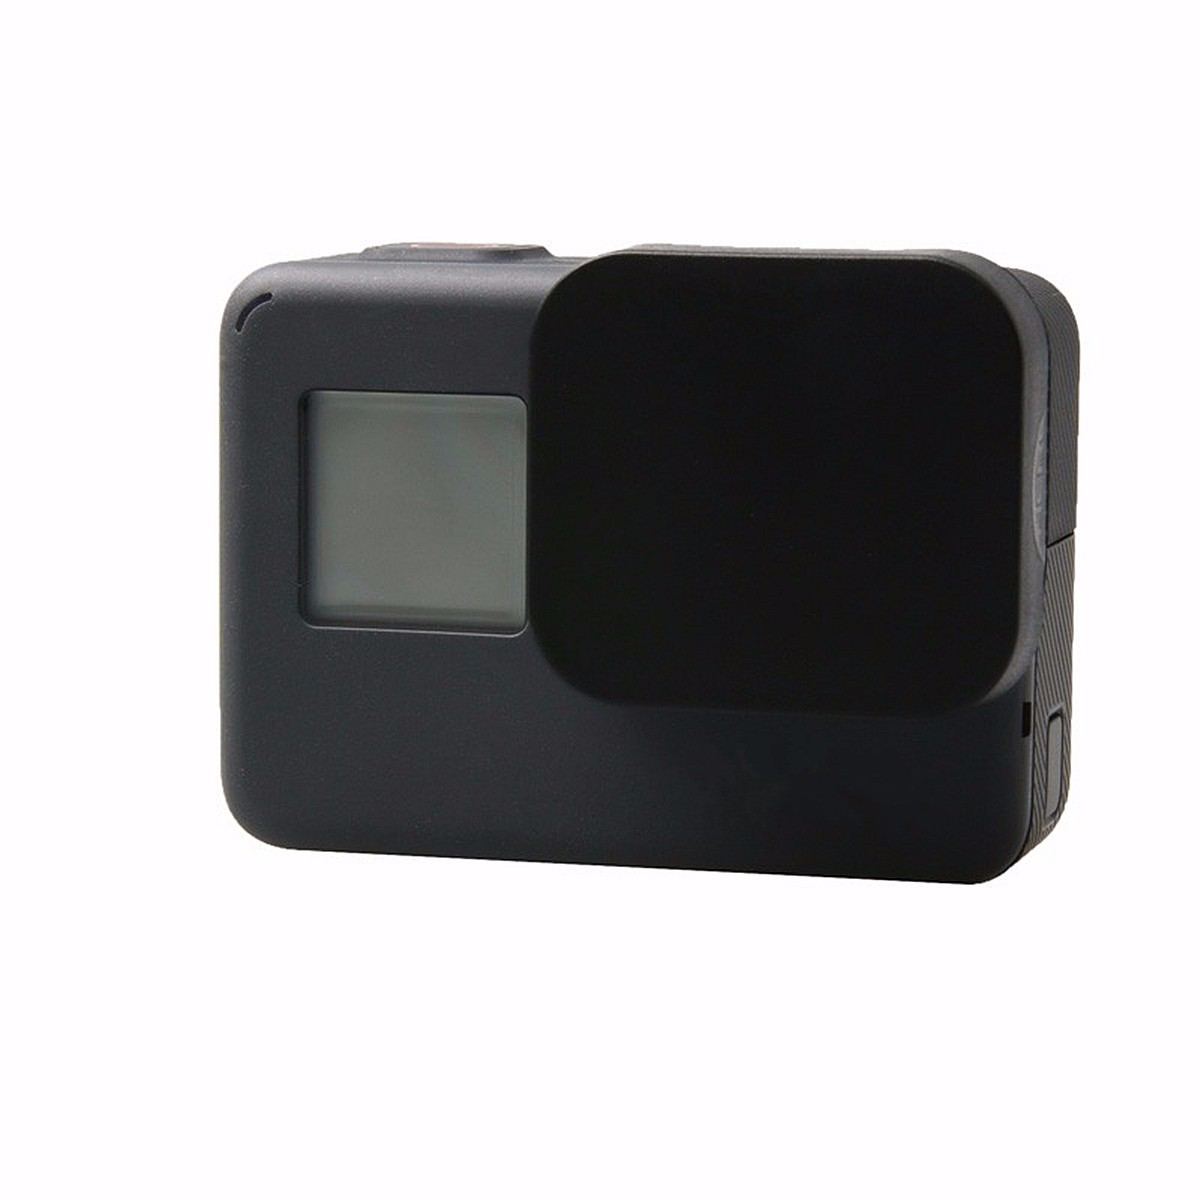 Plastic Lens Cap Cover Case Protector For Gopro Hero 5 6 7 Black Sport Action Camera